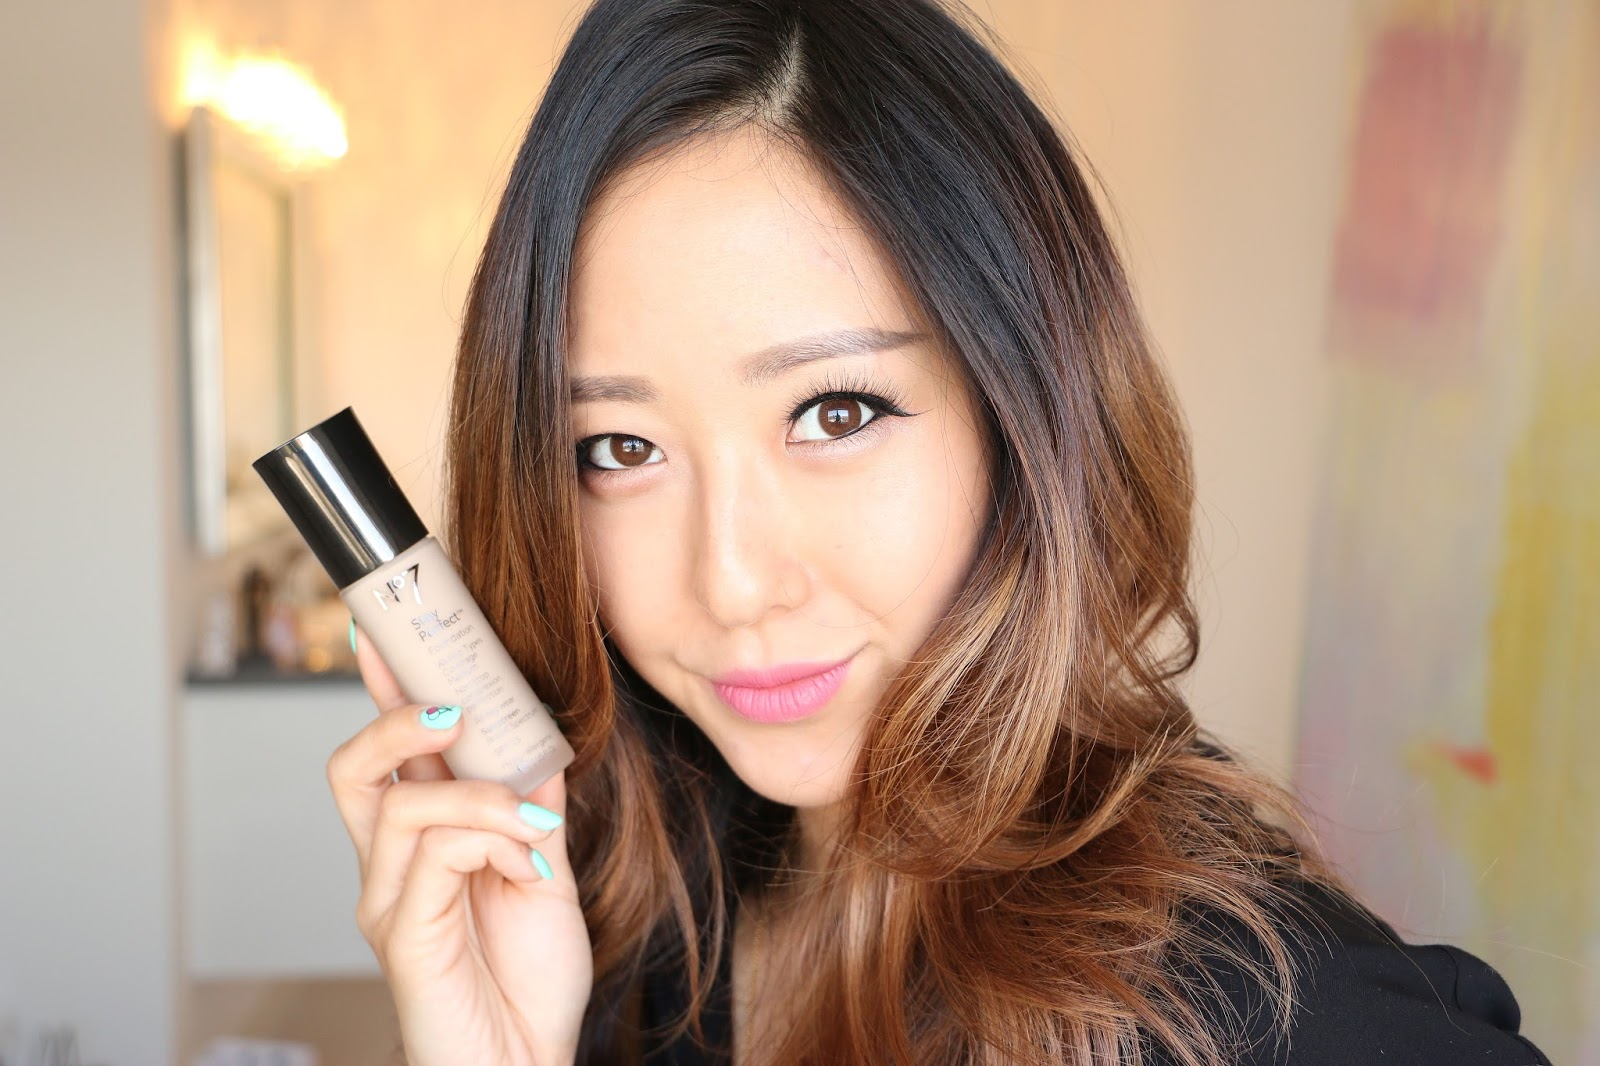 Rae the japanese raeviewer makeup look images